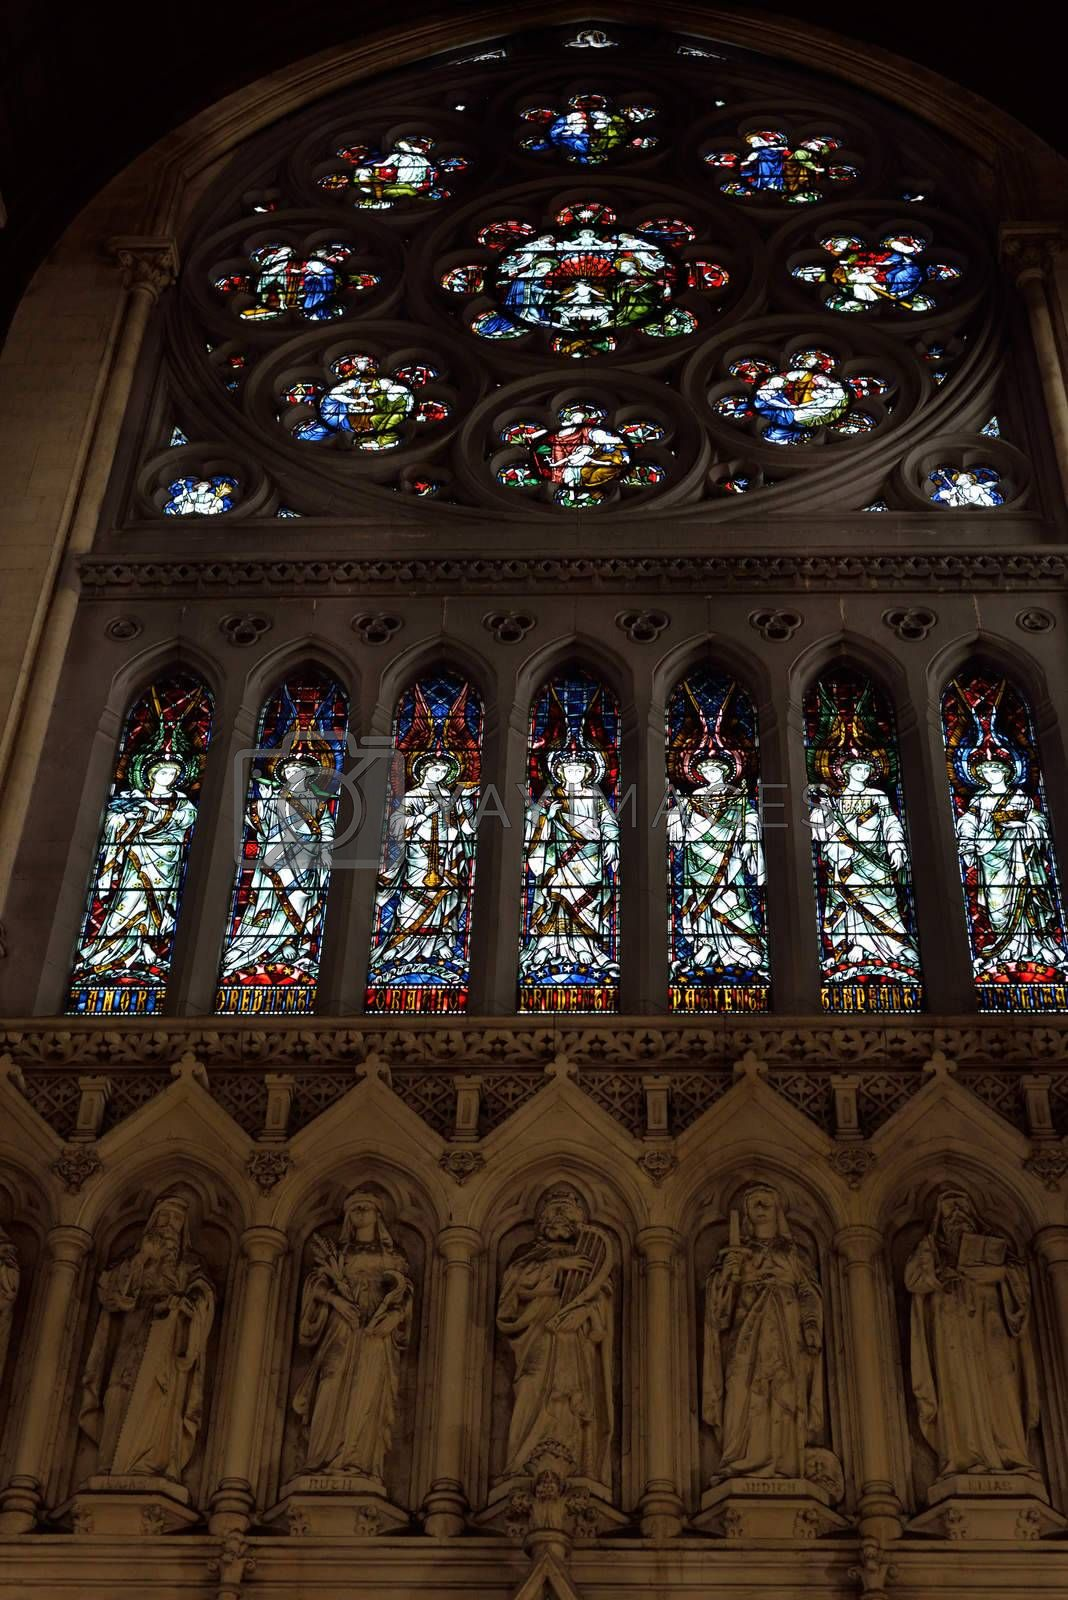 interior stained glass windows of  St Colman's Cathedral by morrbyte